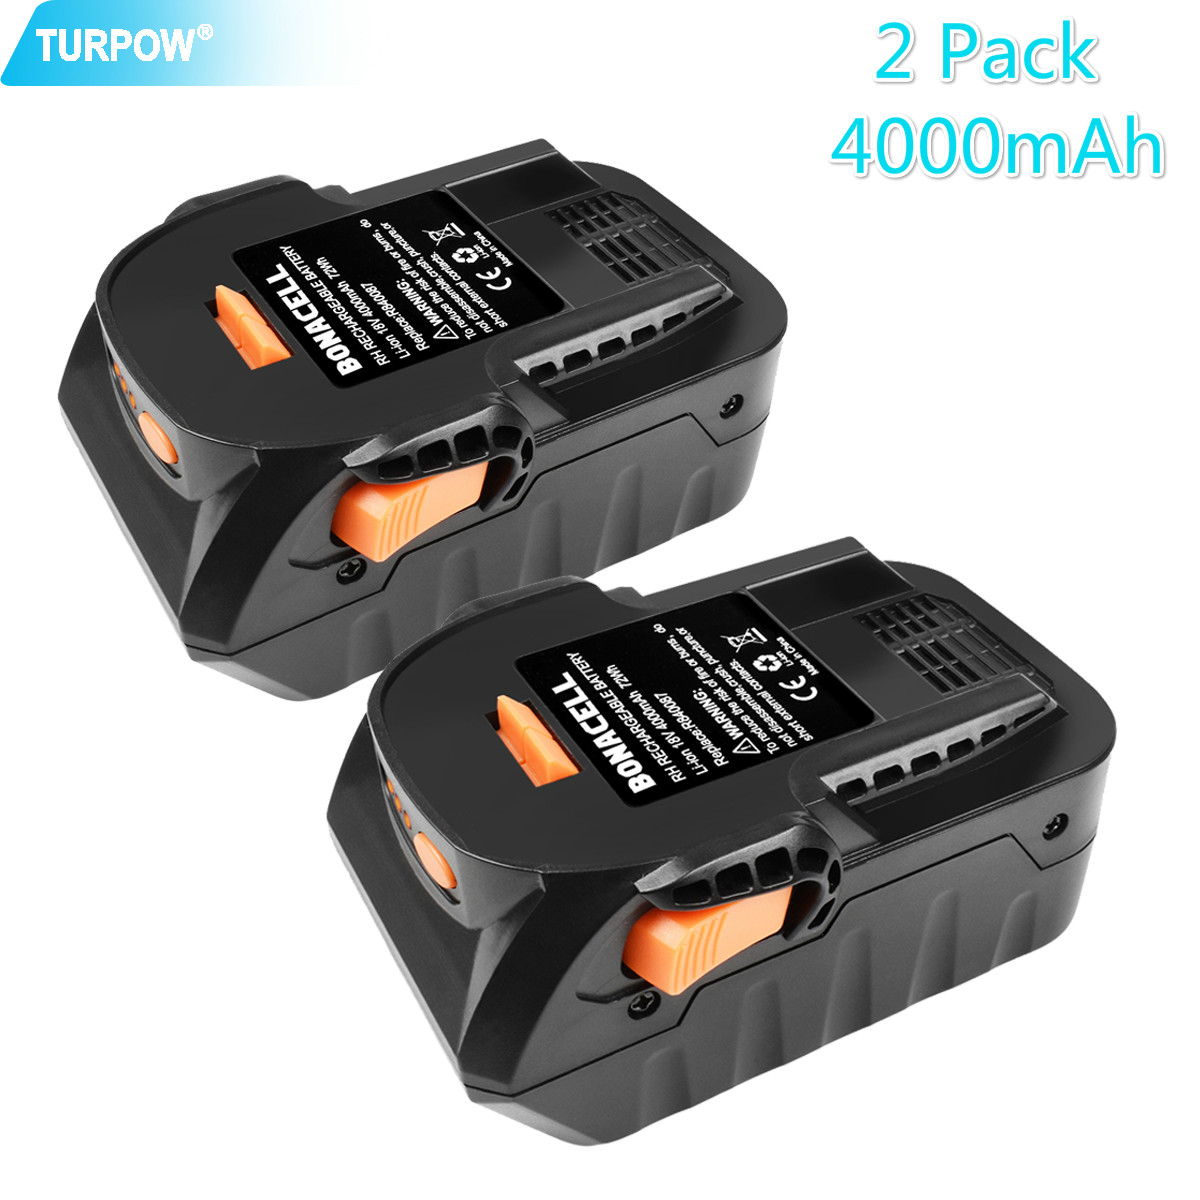 Turpow Battery Power-Tool RIDGID 18v li-Ion Aeg-Series Rechargeable 6000mah for R840083/R840085/R840086/.. title=